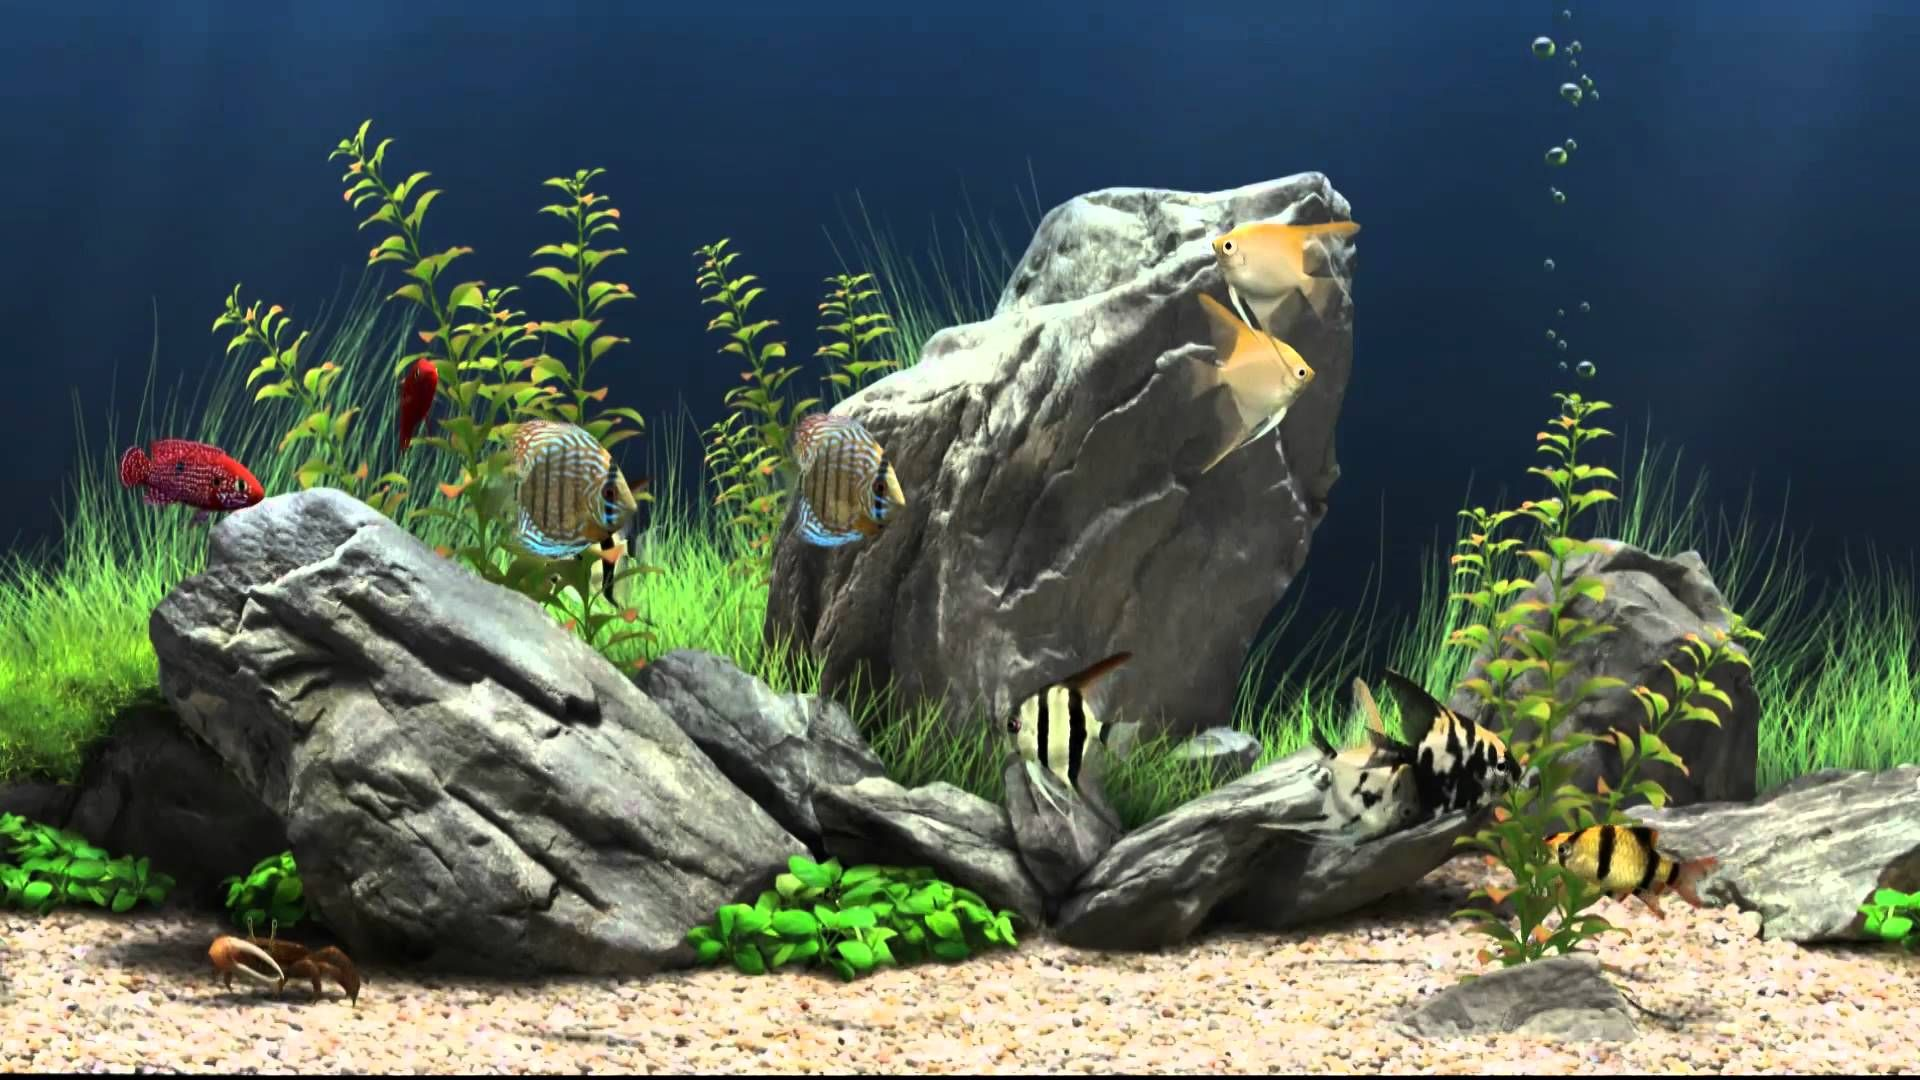 Freshwater aquarium no fish - Dream Aquarium Virtual Fishtank Who Says You Can T Have An Aquarium In An Rv No Water Worries No Cleaning Required No Fish To Feed The Perfect Rv